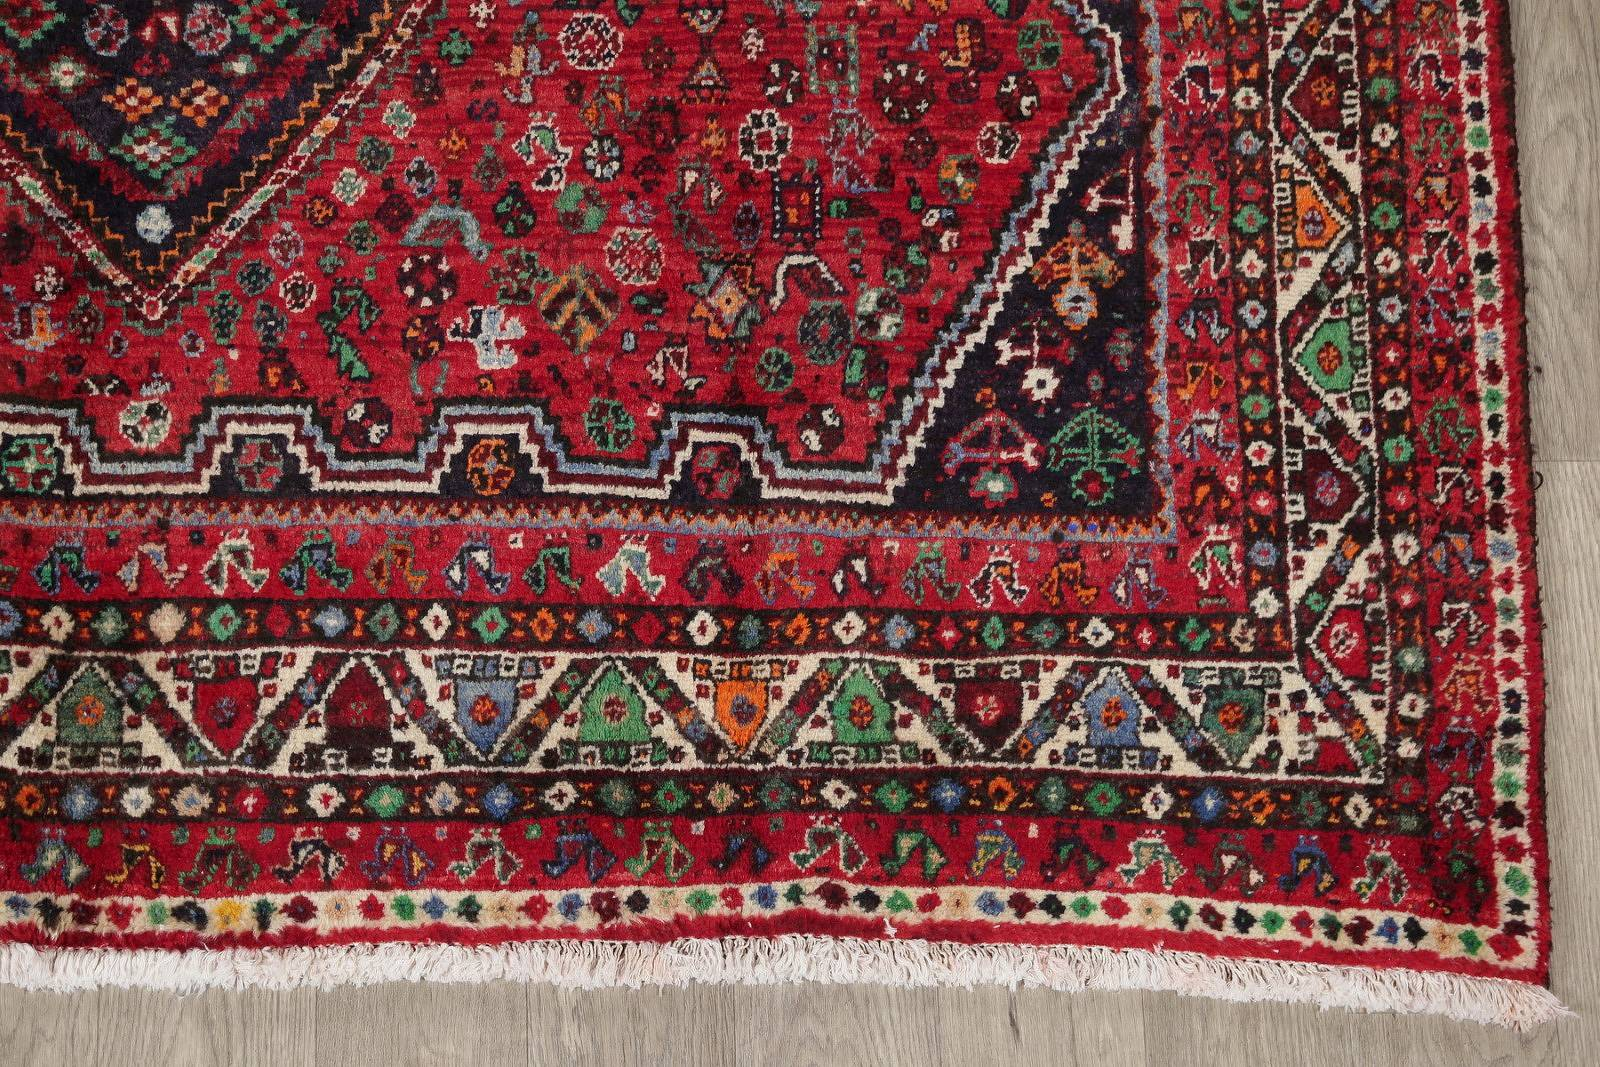 Tribal Geometric Red Shiraz Persian Hand-Knotted Area Rug Wool 7x10